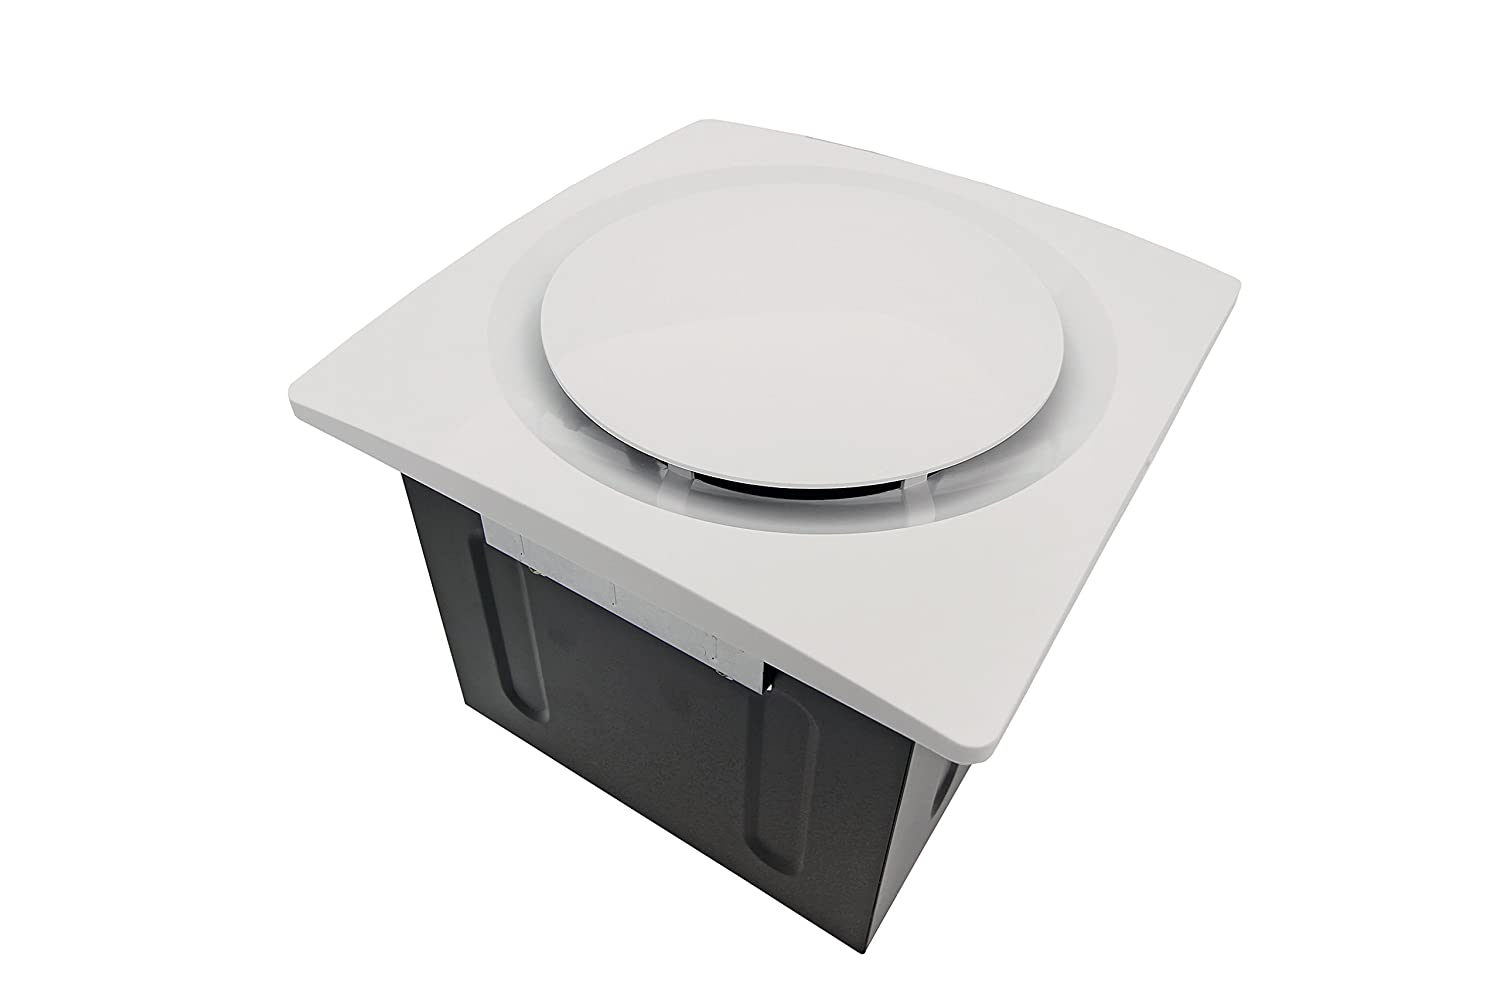 macpages panasonic me to whisper with pertaining exhaust ceiling stunning fan bathroom light quiet vent replacement